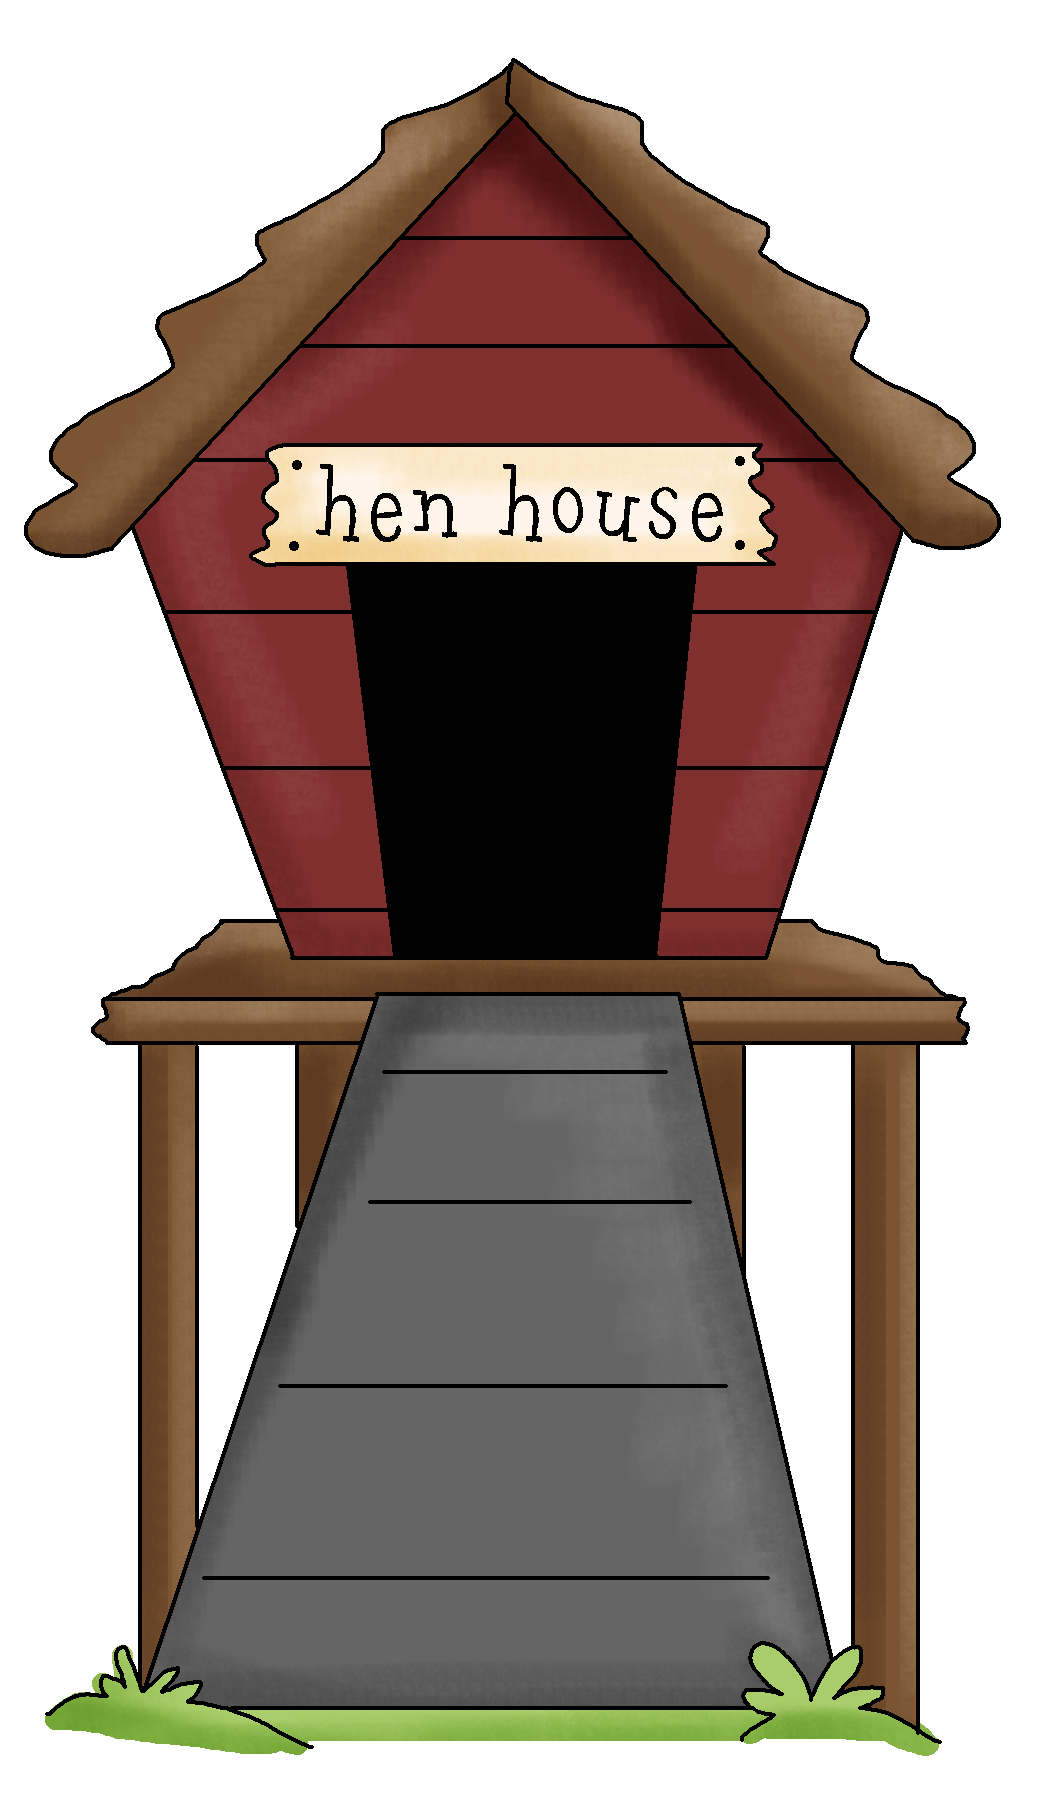 picture freeuse download Hen house clipart. Collection of free henhouses.